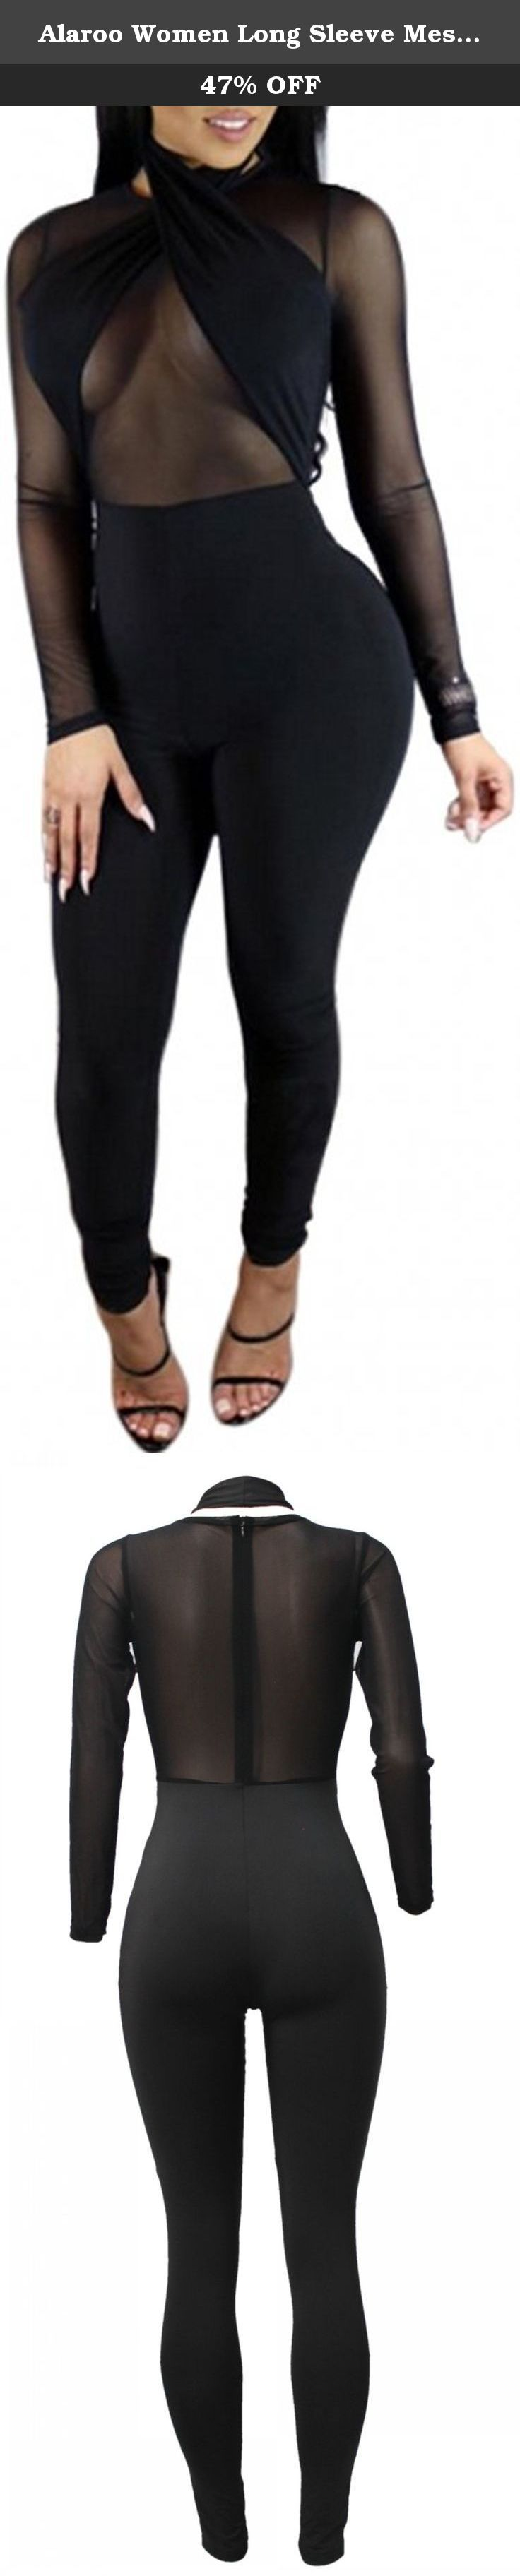 Alaroo Women Long Sleeve Mesh Sheer Black Mesh Bodysuit Jumpsuit. Fabric Type:Broadcloth Design: Patchwork Jumpsuit Neckline:V-Neck Sleeve Length:Full Pattern Type:Solid Style:Sexy & Club Material:Cotton,Polyester Size:S, M, L, XL Weight: 500g=1.1lb .